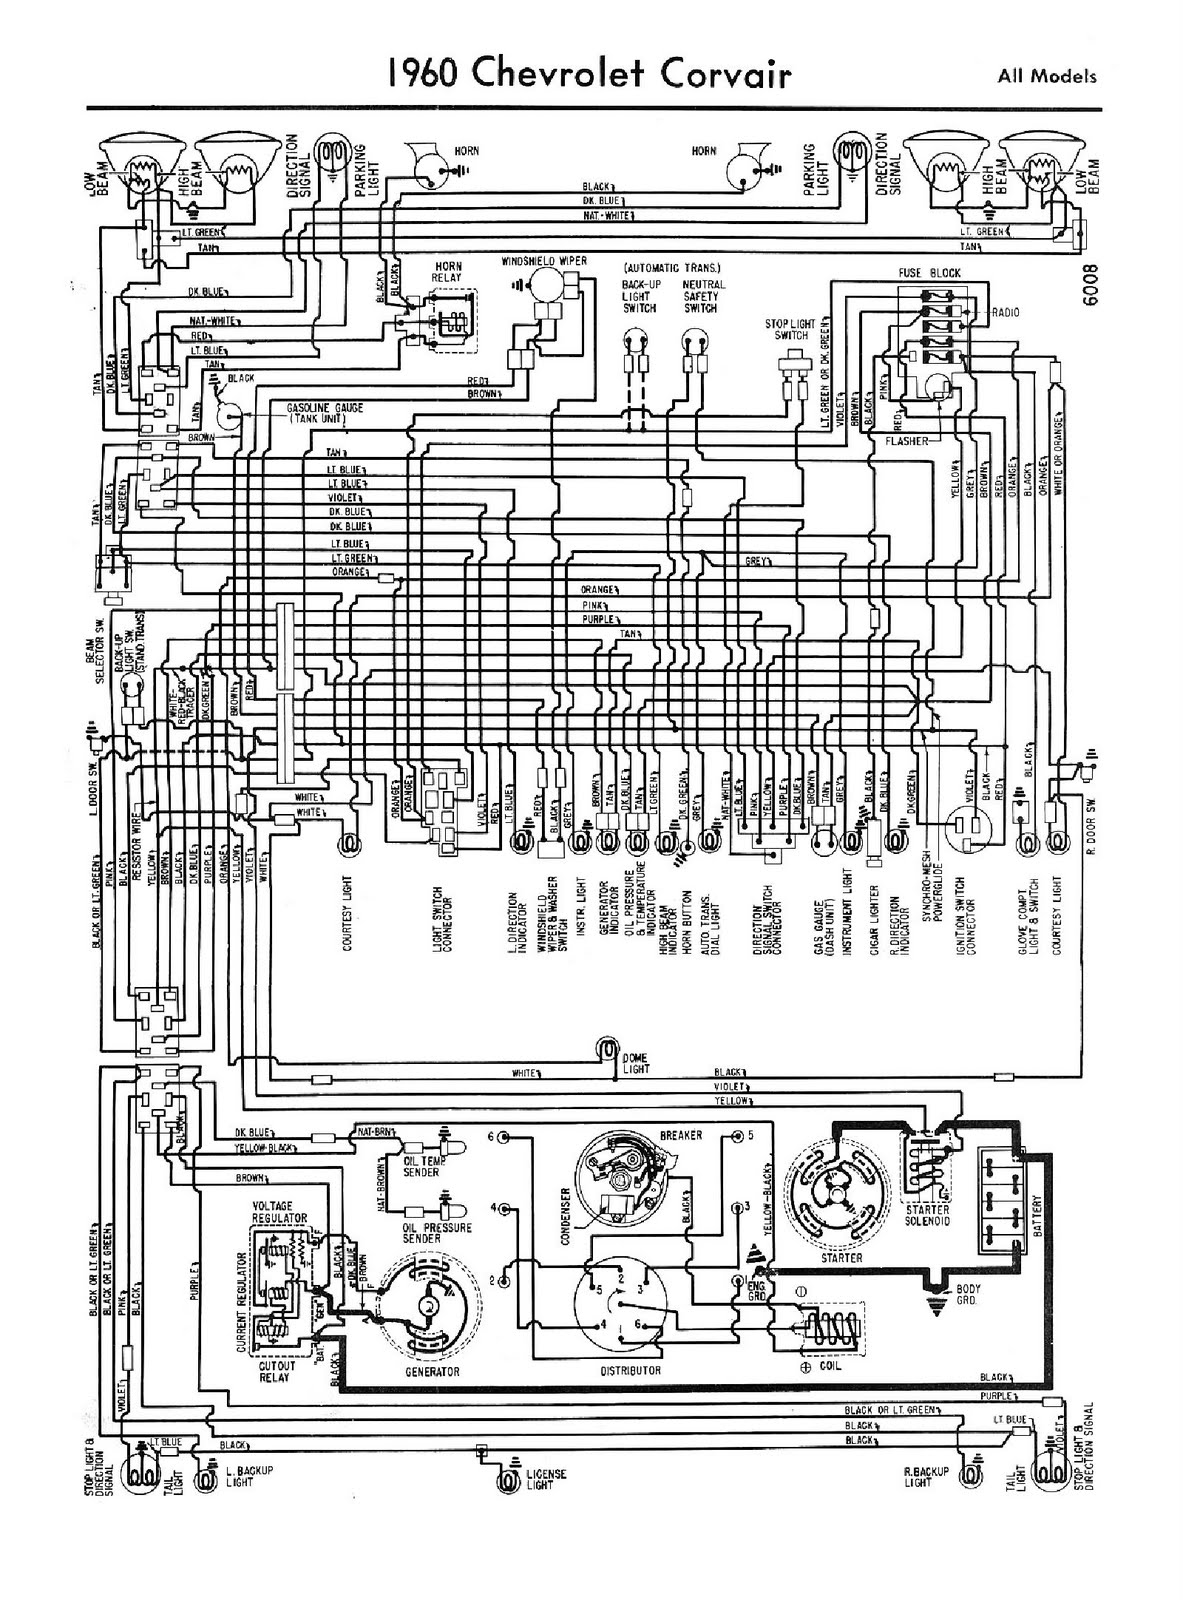 medium resolution of free auto wiring diagram 1960 chevrolet corvair wiring 1960 chevy impala wiring diagram 1960 chevy impala